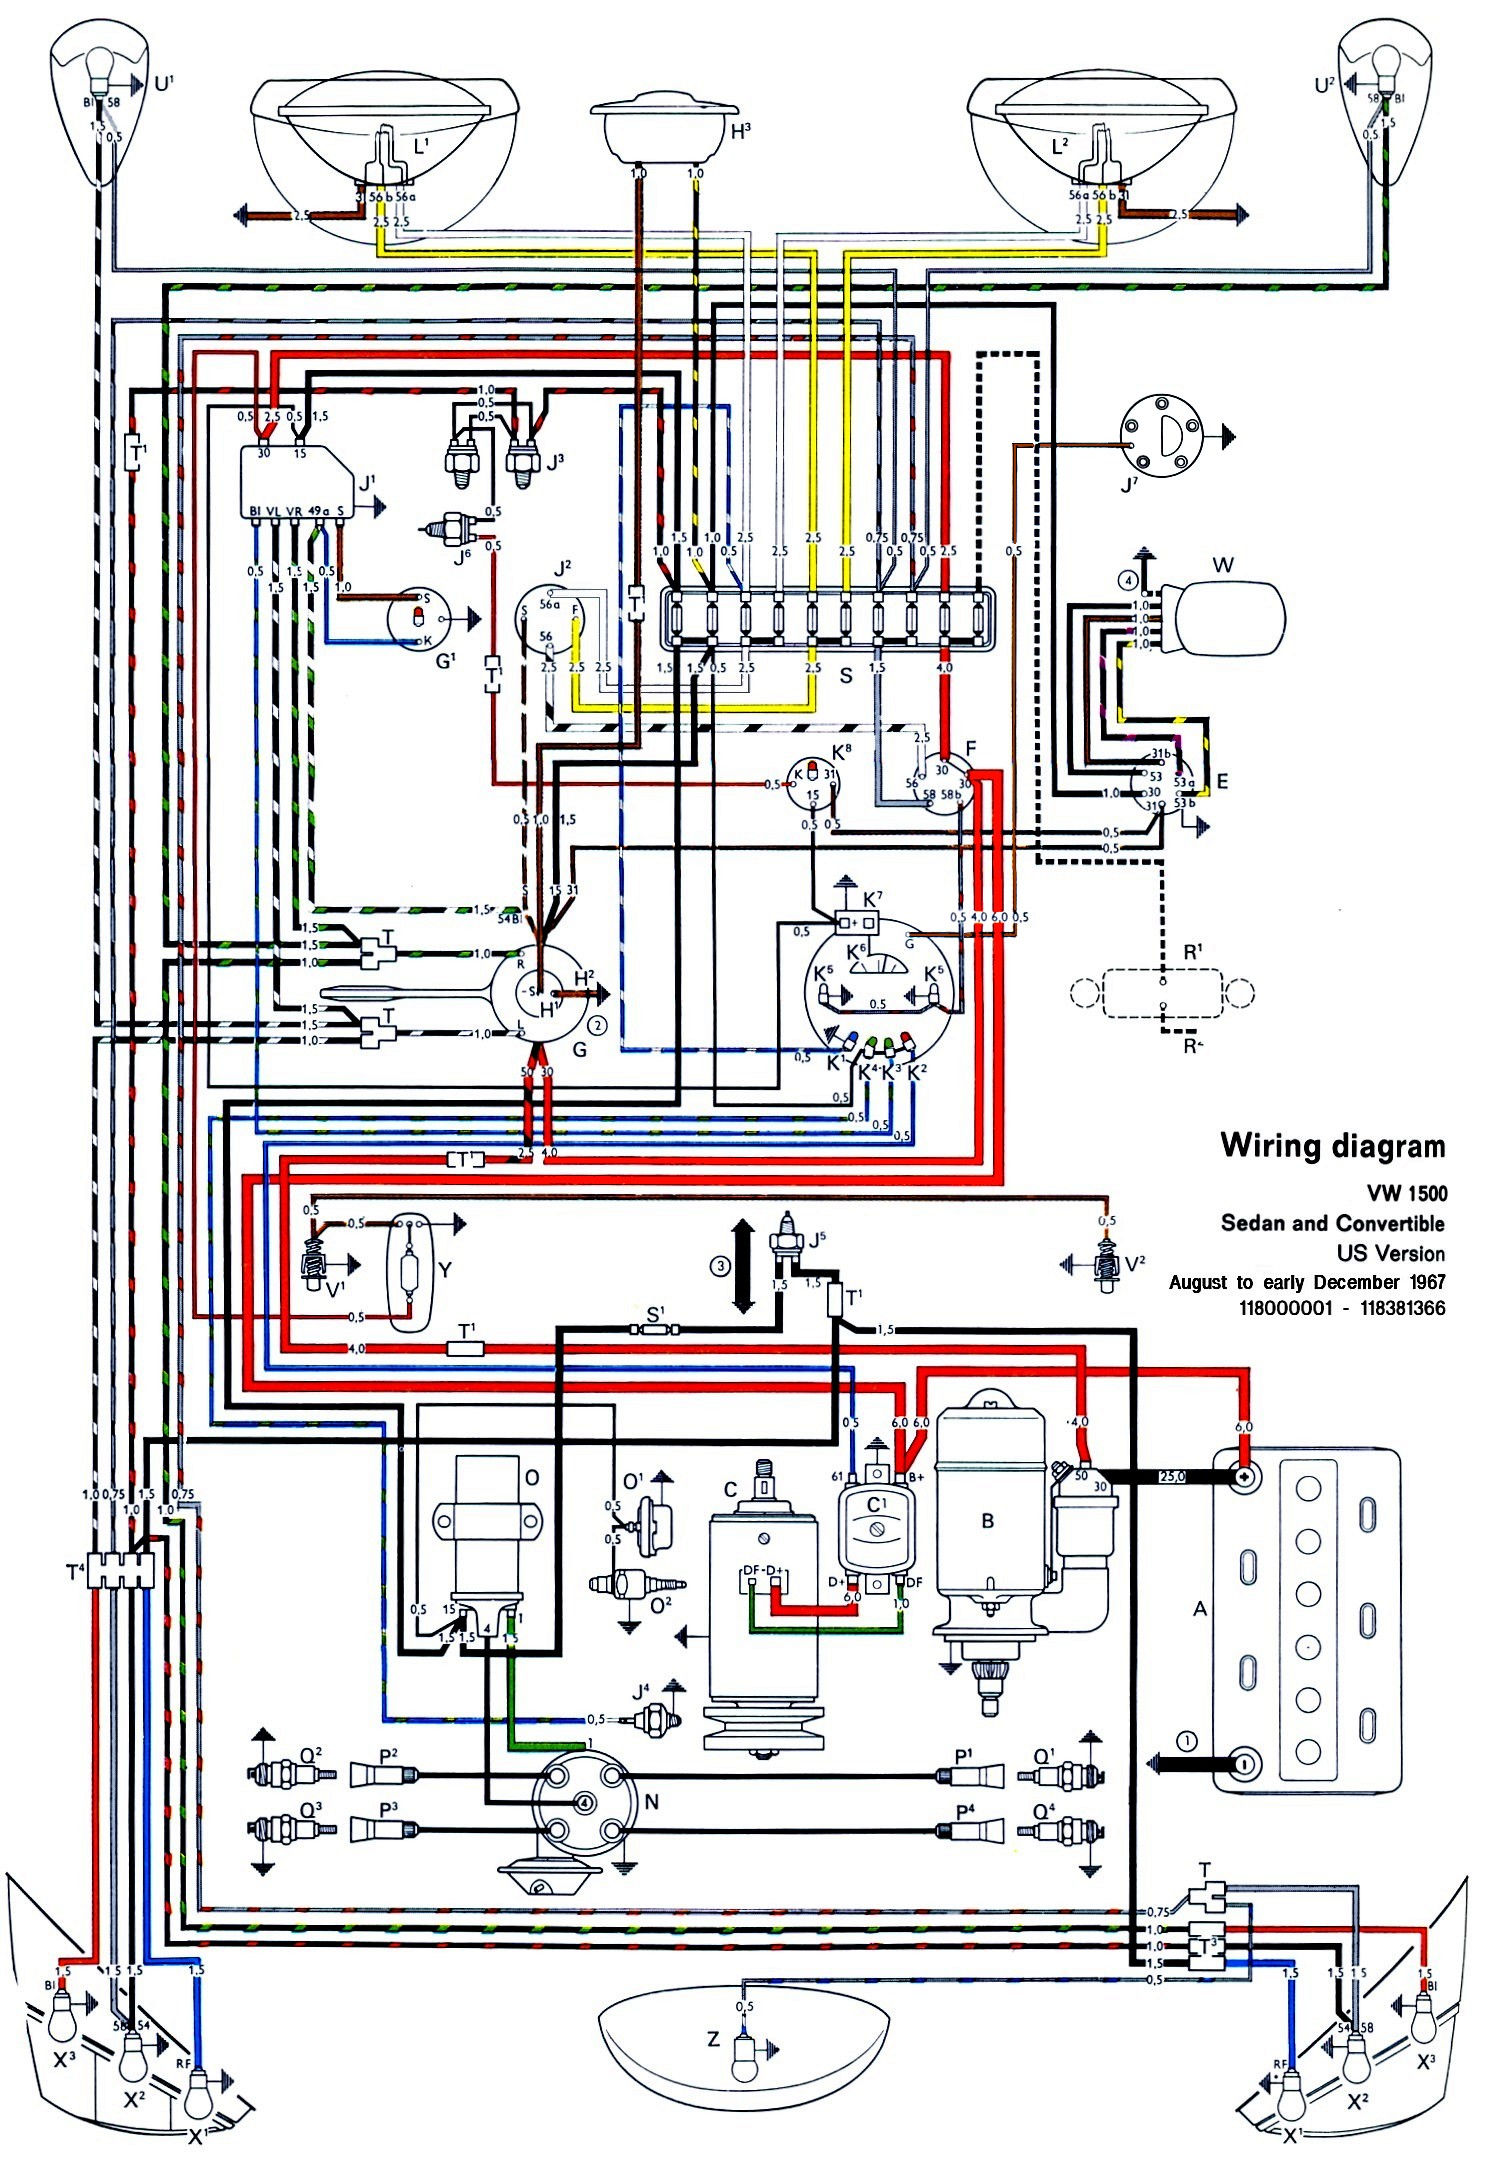 Vw Turn Signal Wiring Great Design Of Diagram Map Saab Sensor 9132374 70 Type 3 Get Free Image About Beetle